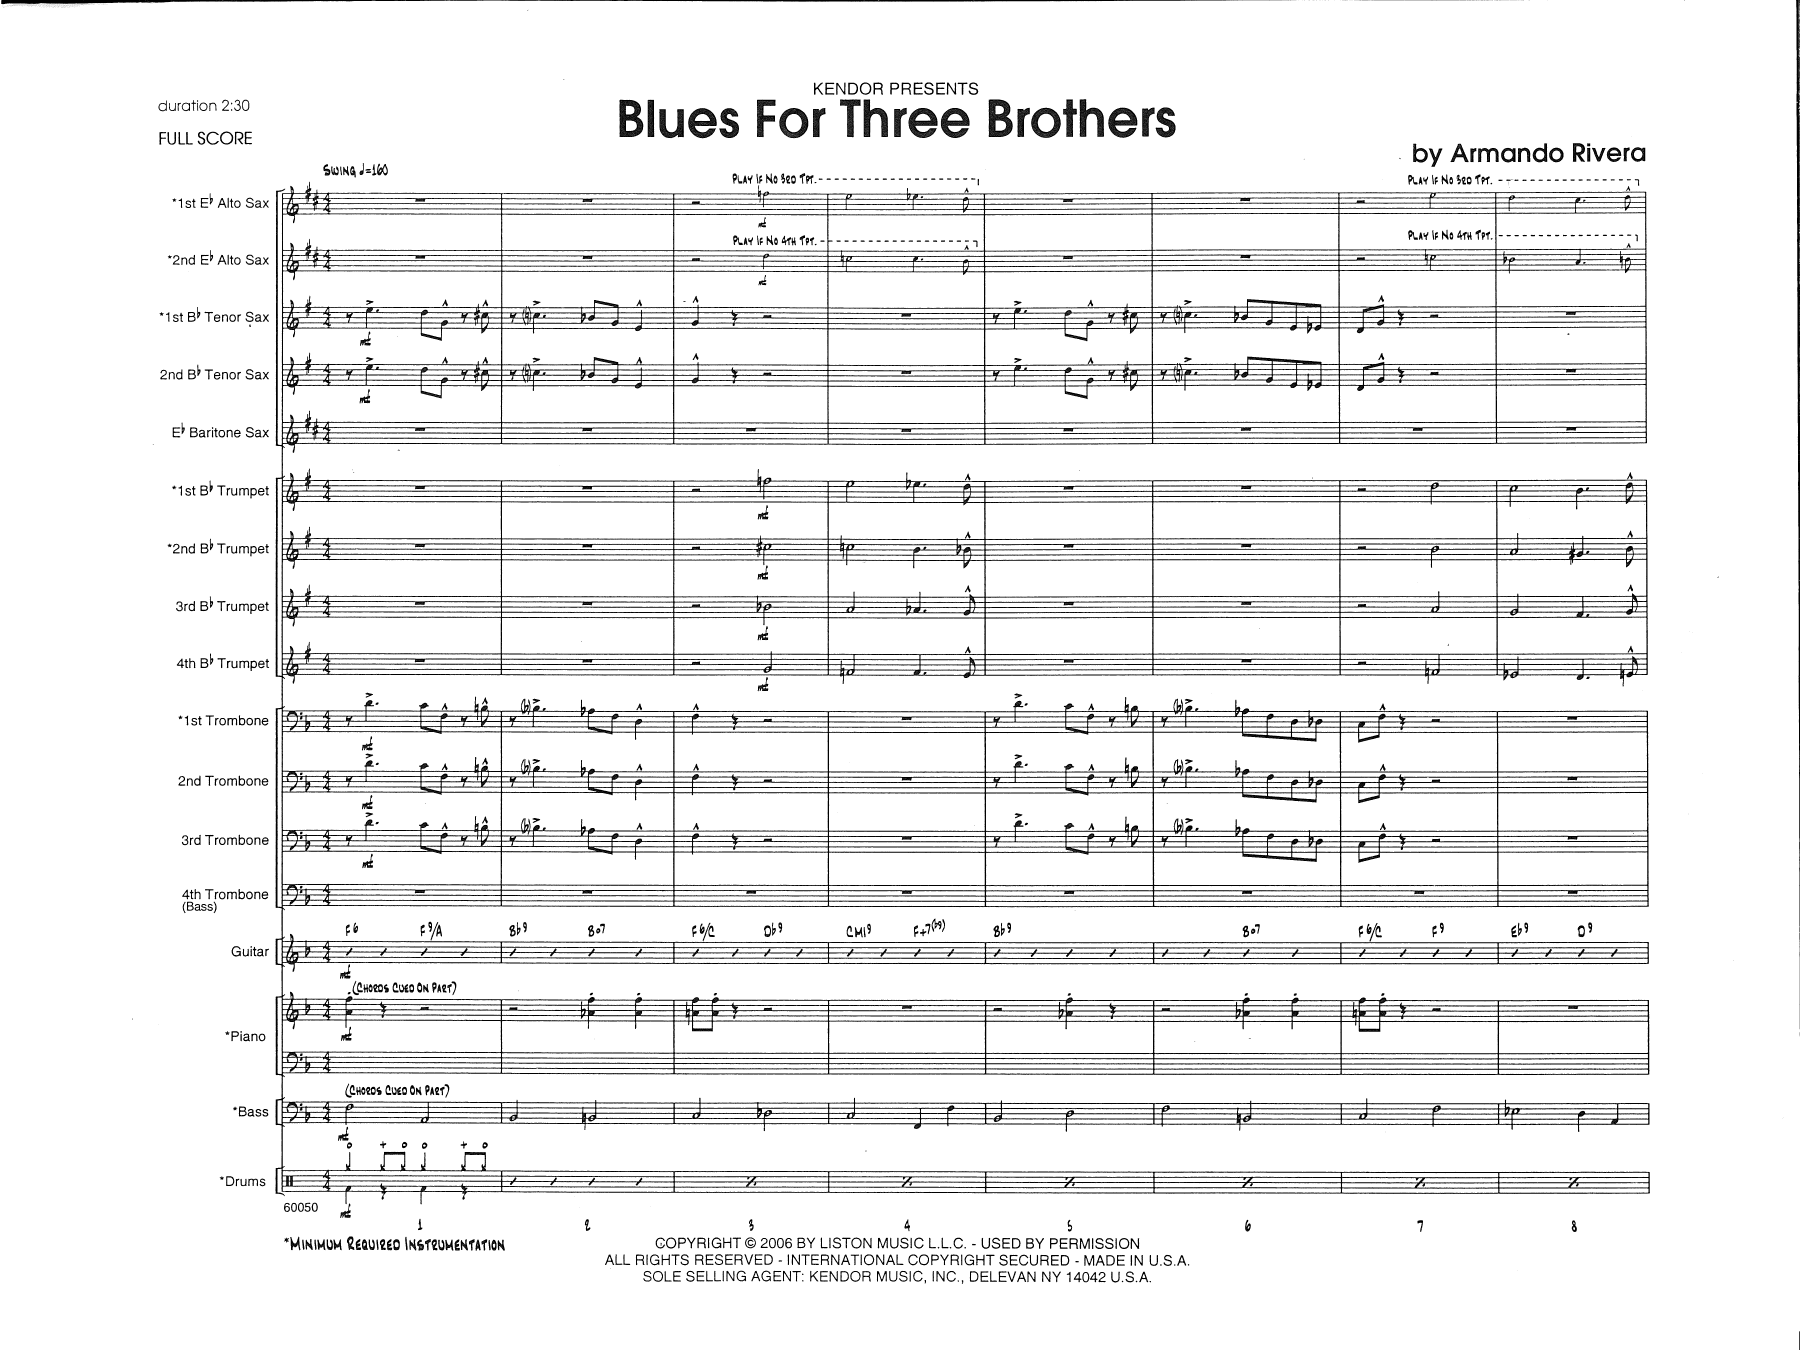 Blues For Three Brothers - Full Score atStanton's Sheet Music